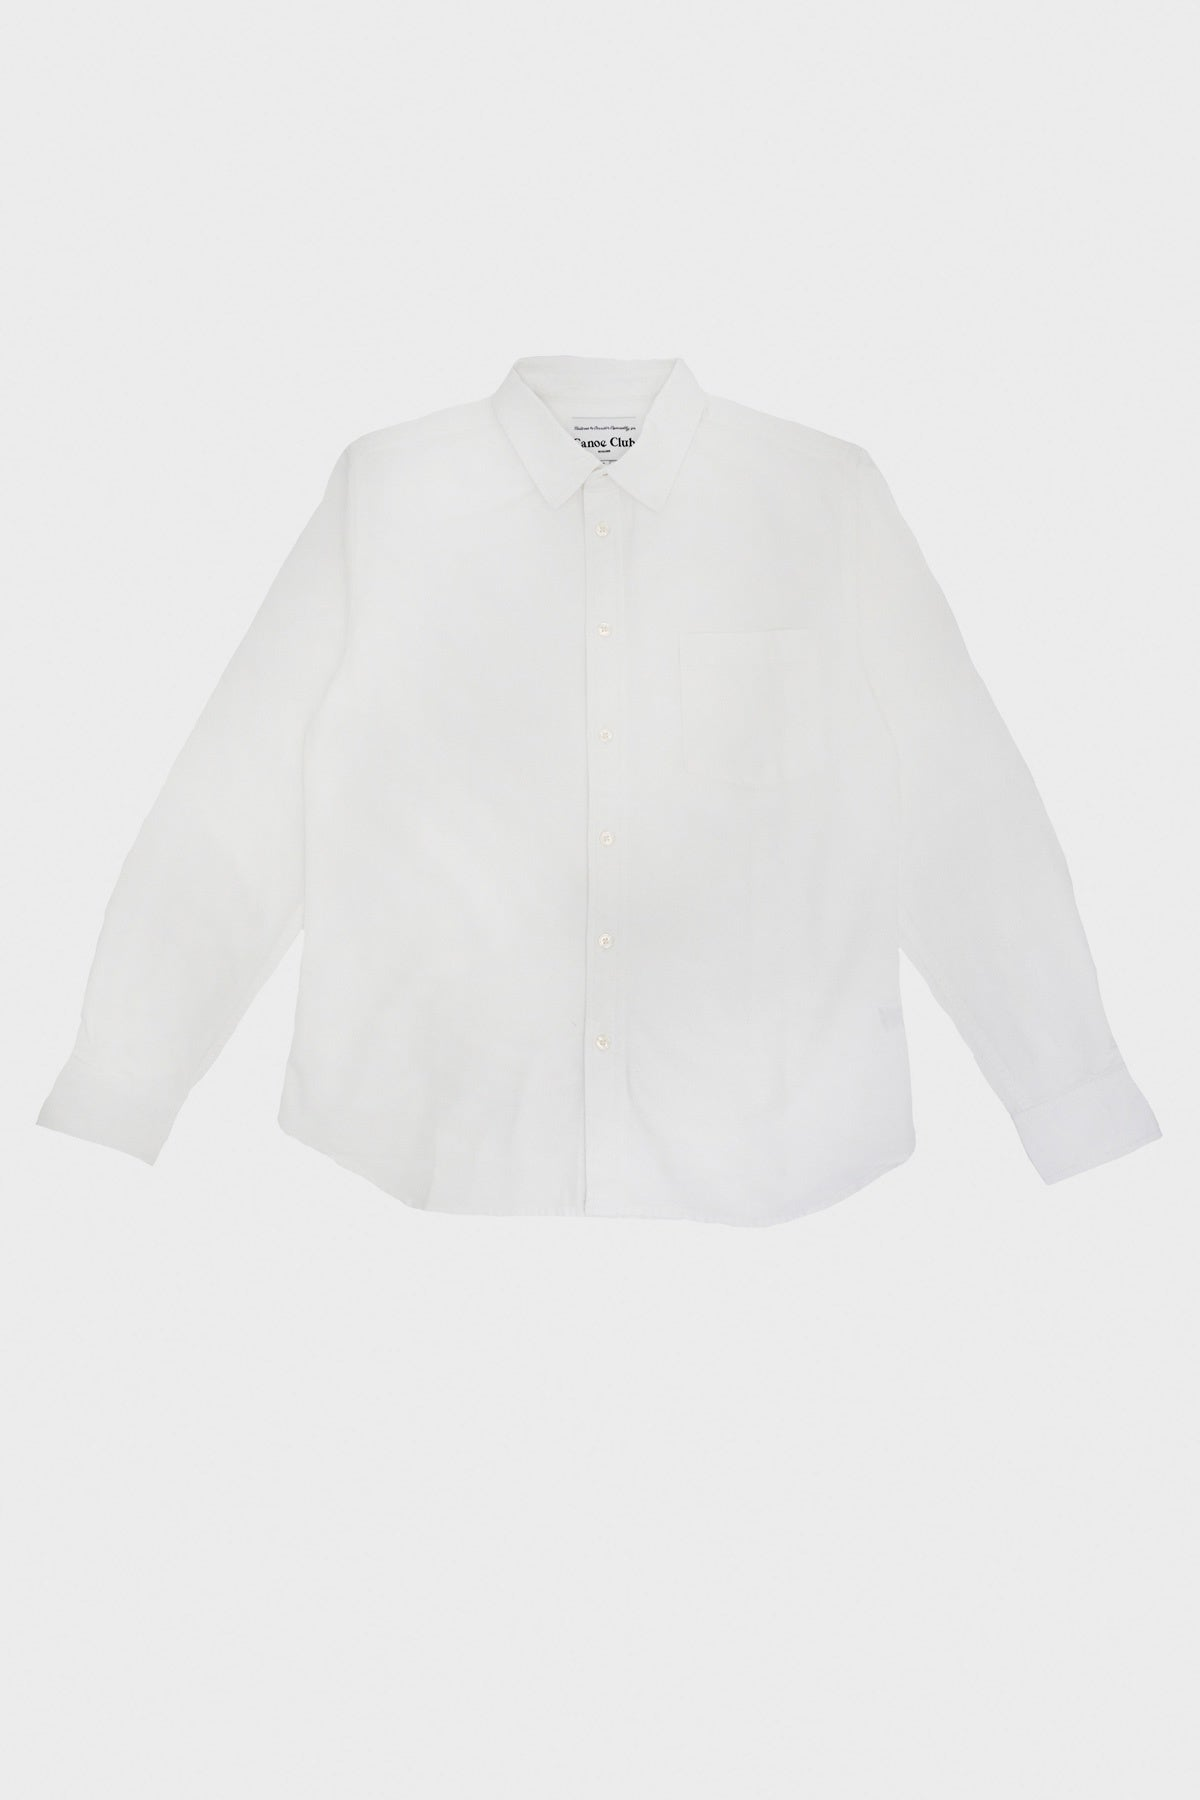 corridor clothing nyc Canoe Club Oxford shirt - White